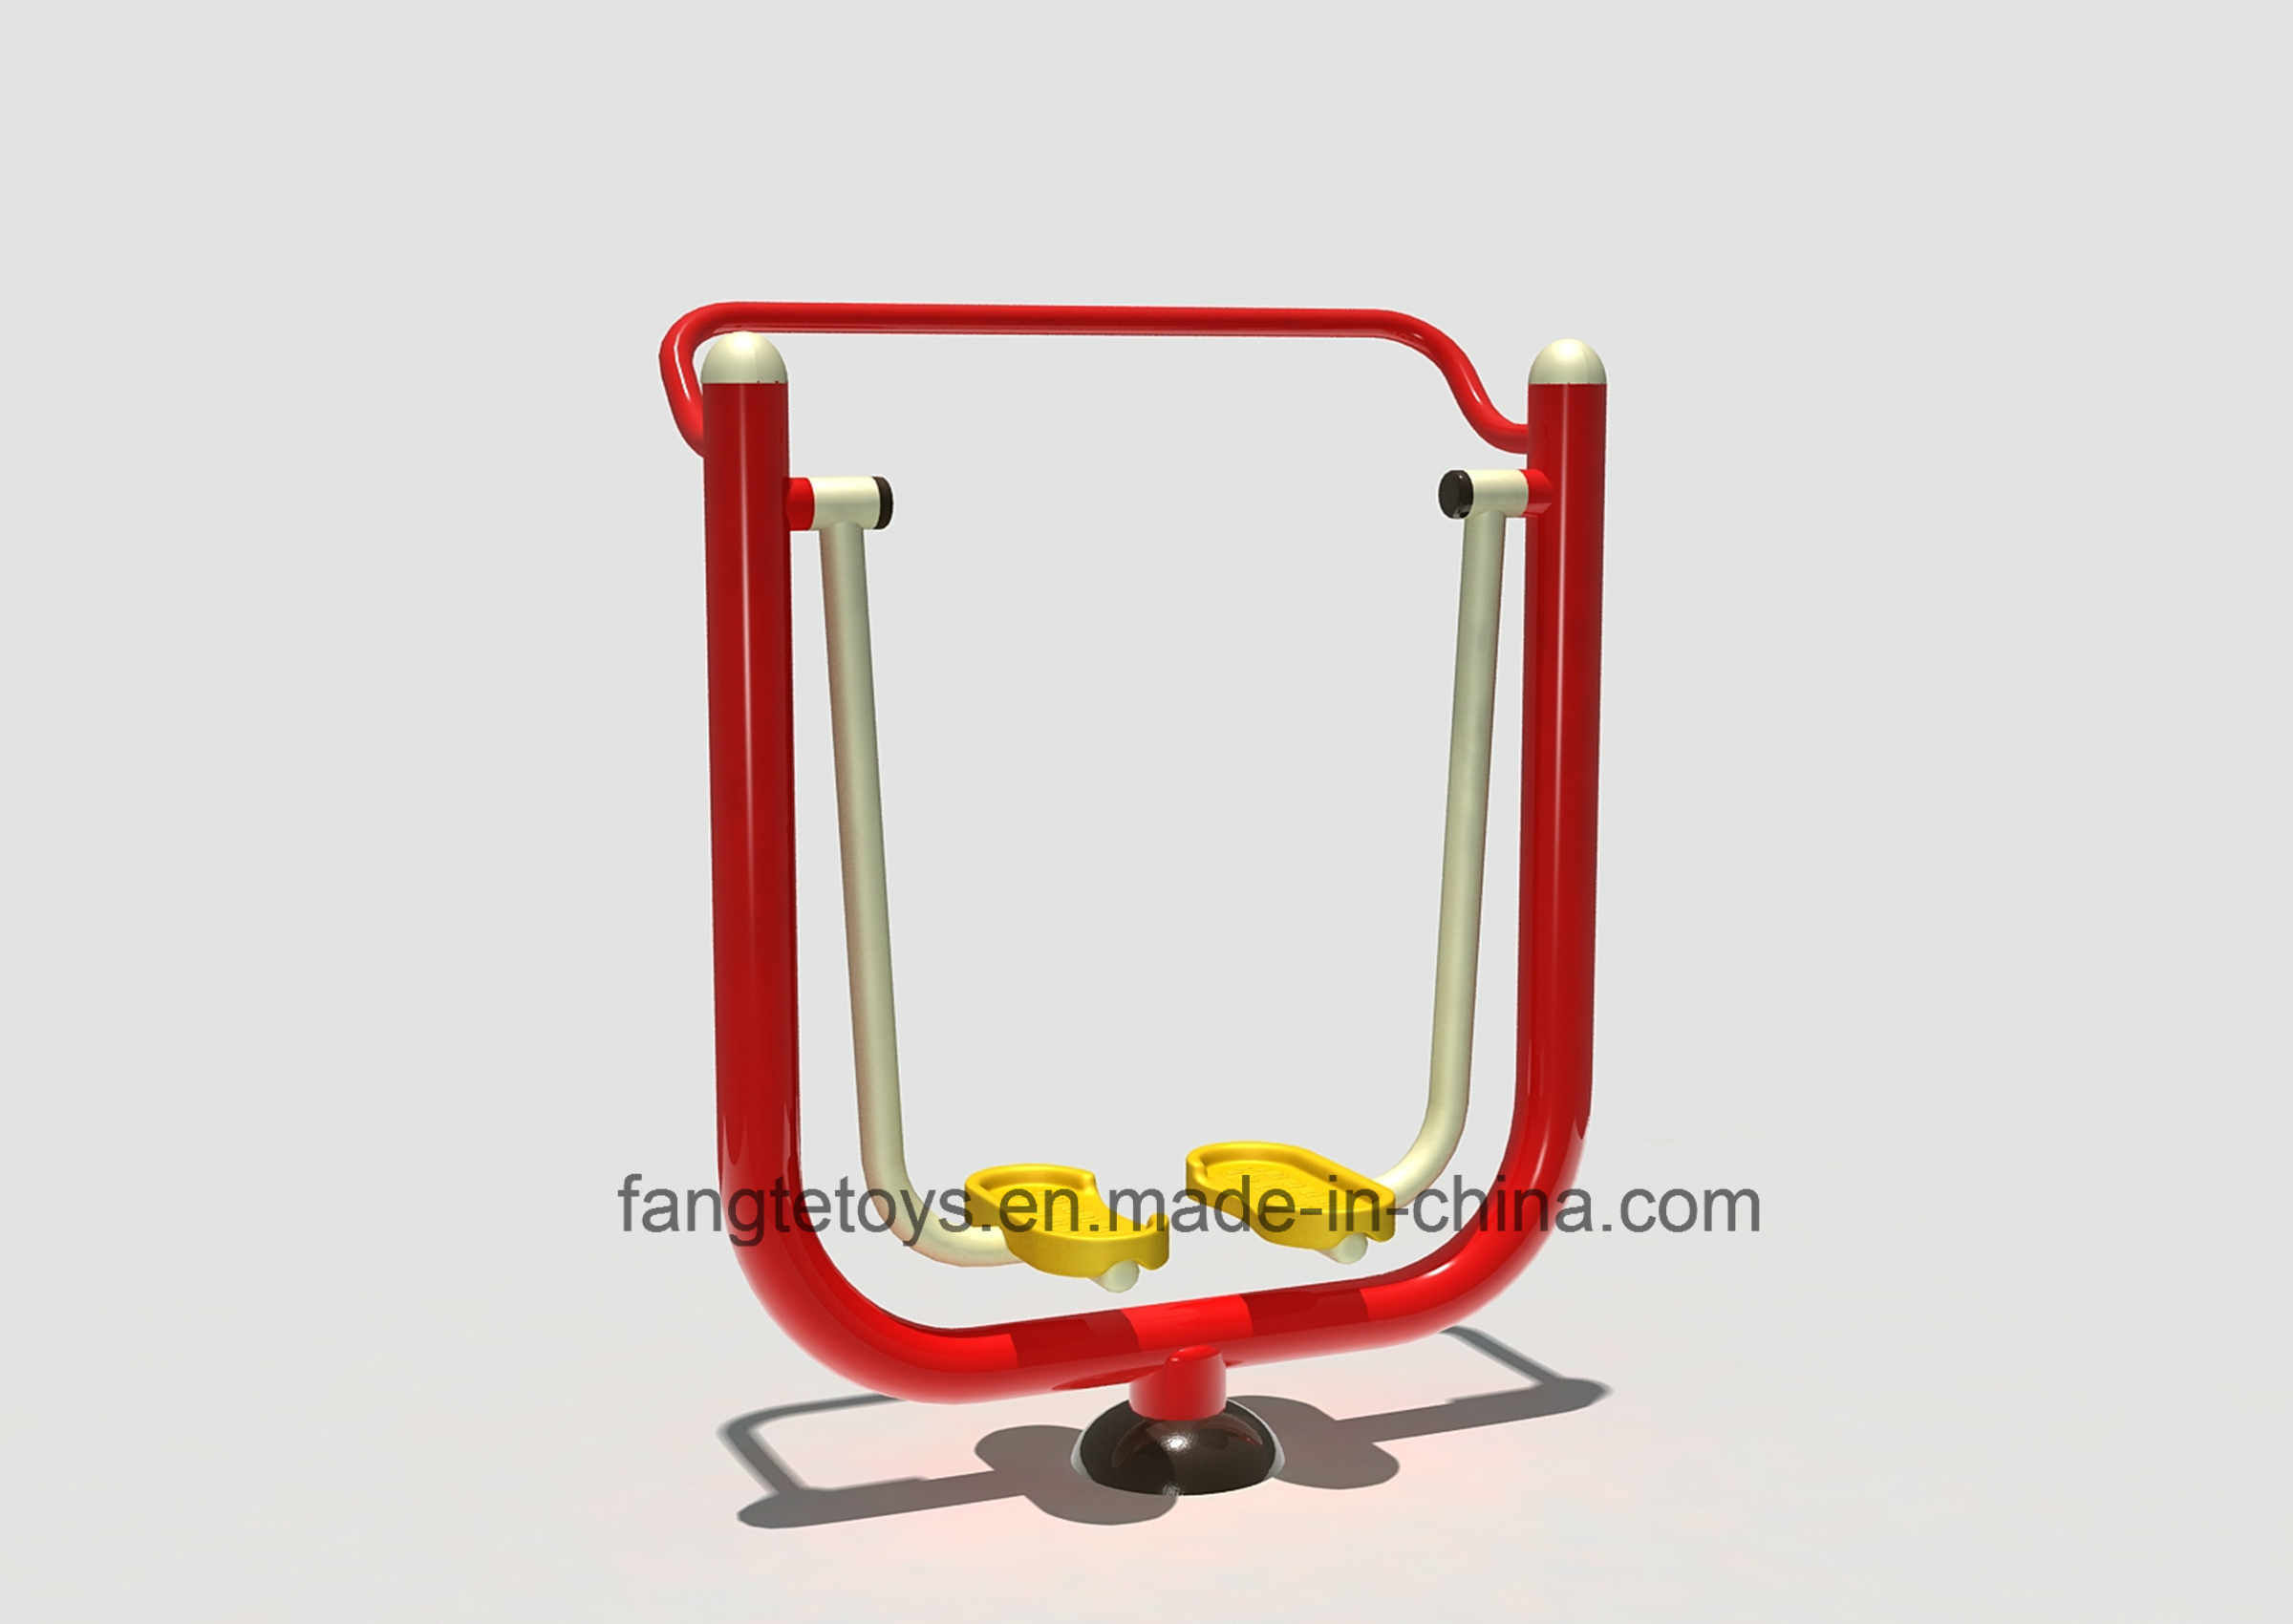 Outdoor Exercise Equipment Single Unit Air Walker FT-Of339